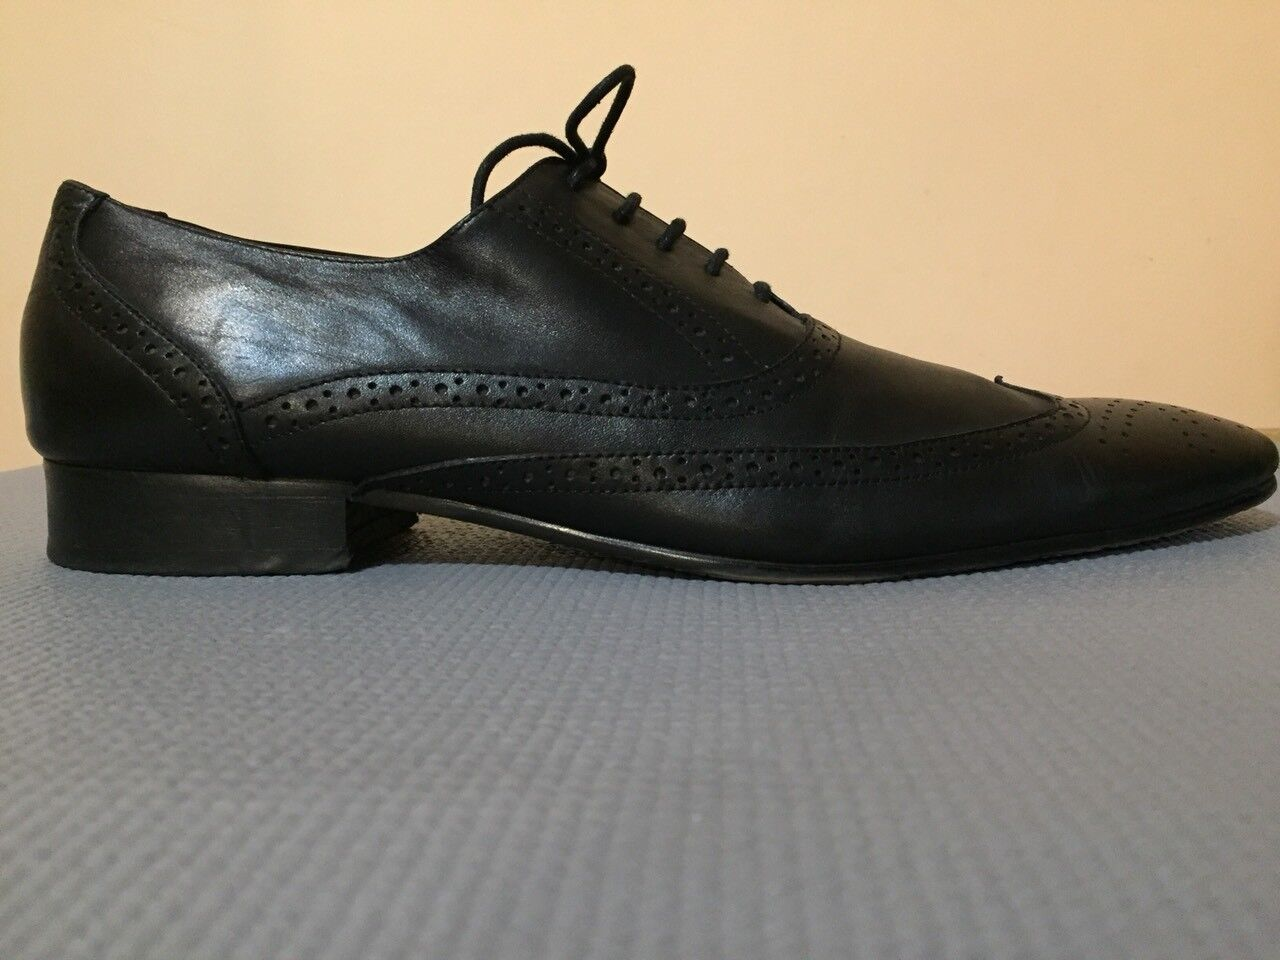 SHOE'SHI BAR COPENHAGEN BLACK LEATHER WING TIP EU45 UK11